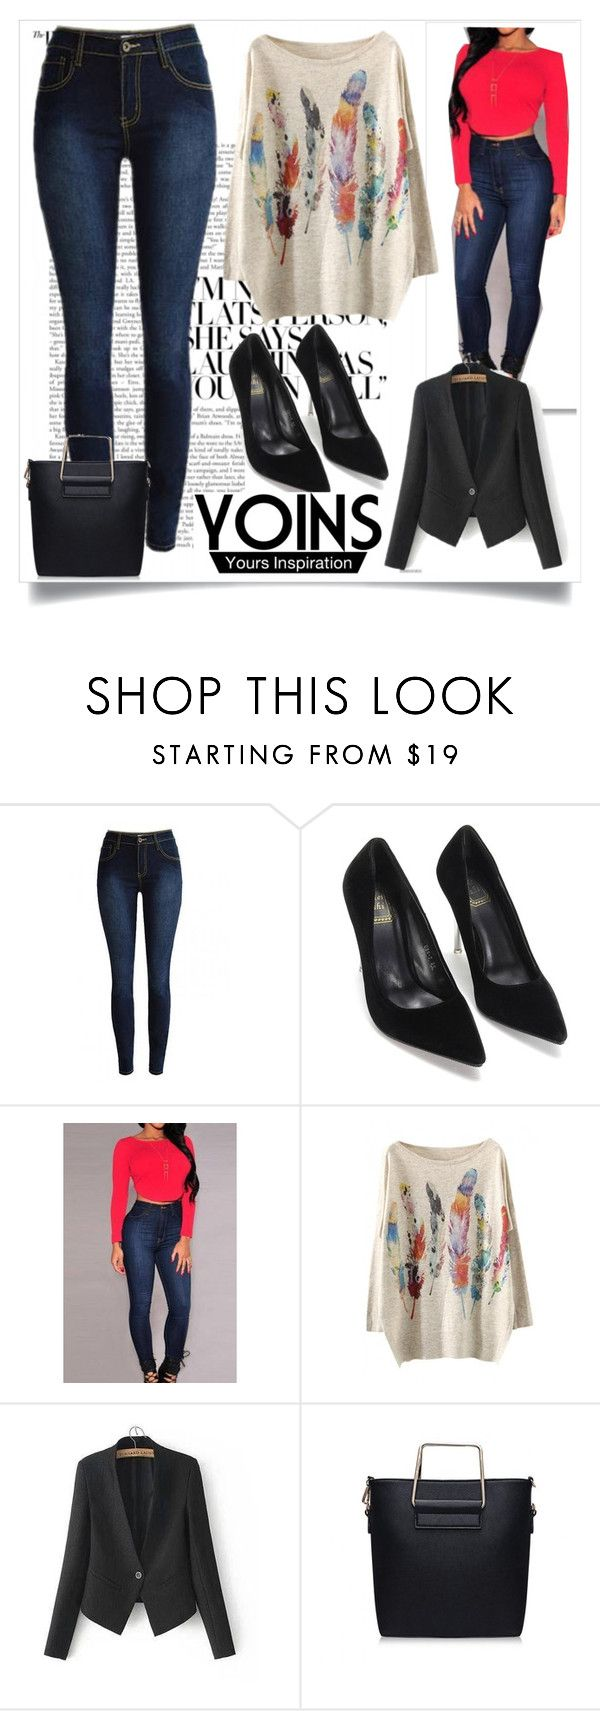 """""""JEANS  Yoins"""" by mamiigou ❤ liked on Polyvore featuring yoins"""